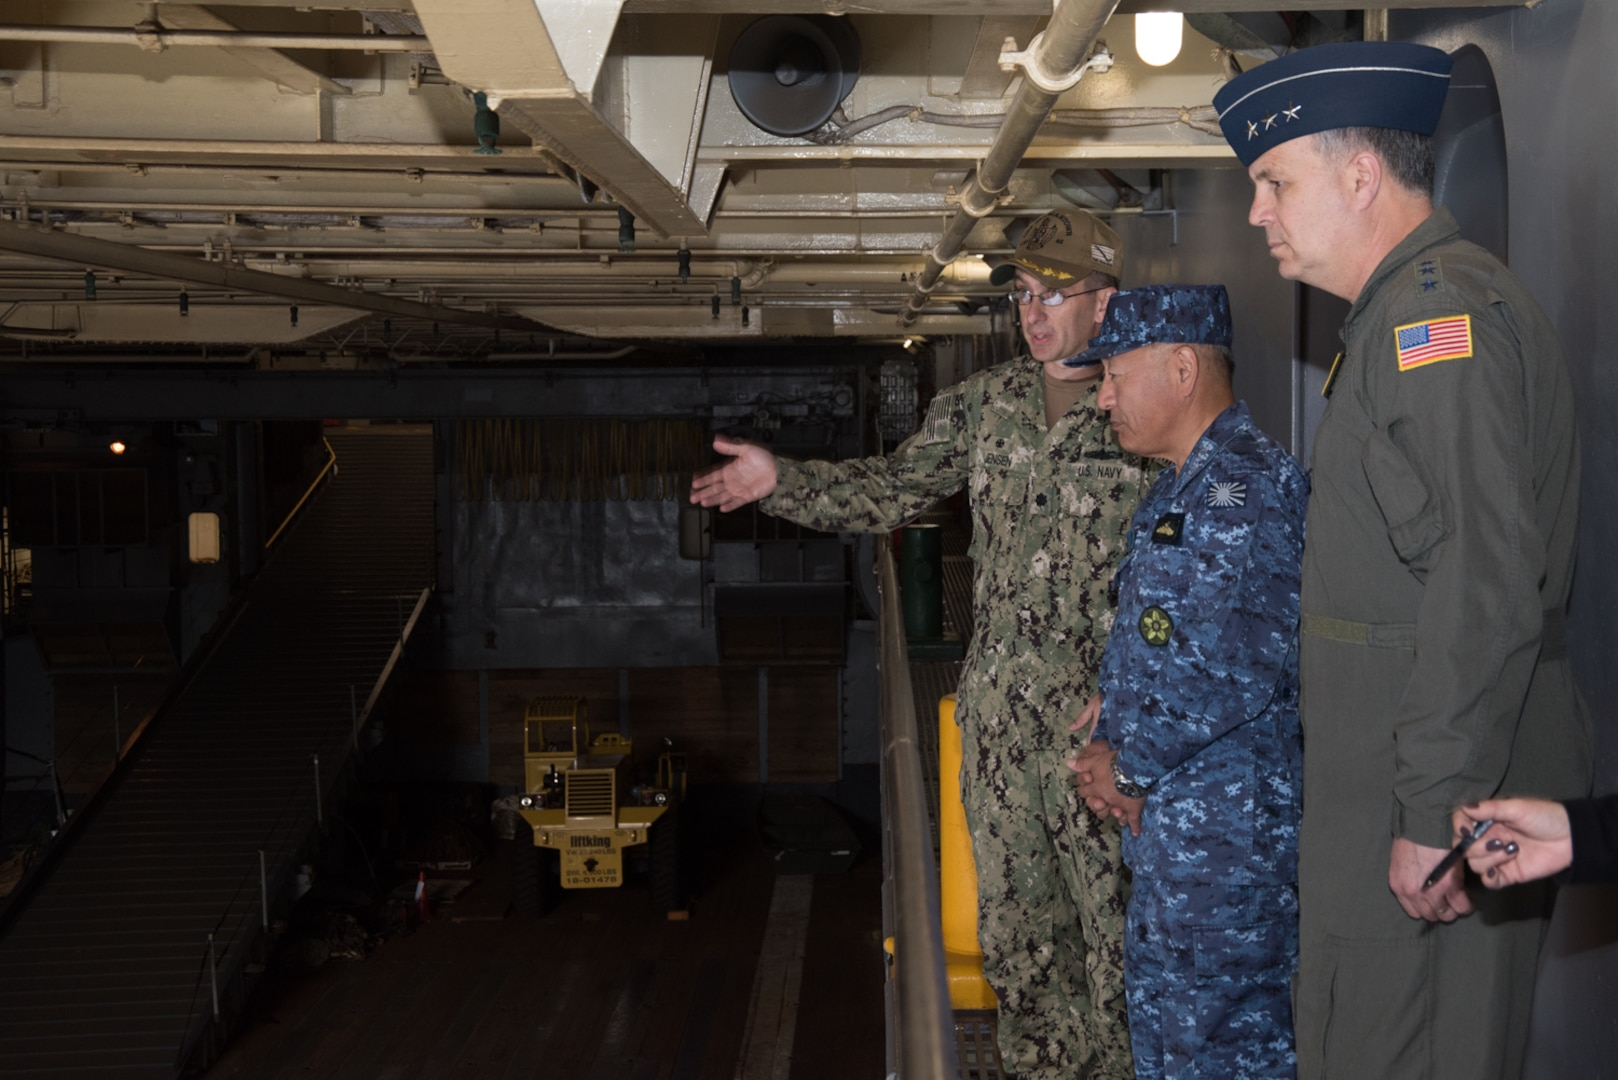 U.S.-Japan Alliance Remains Cornerstone of Peace in Asia, Commander Says